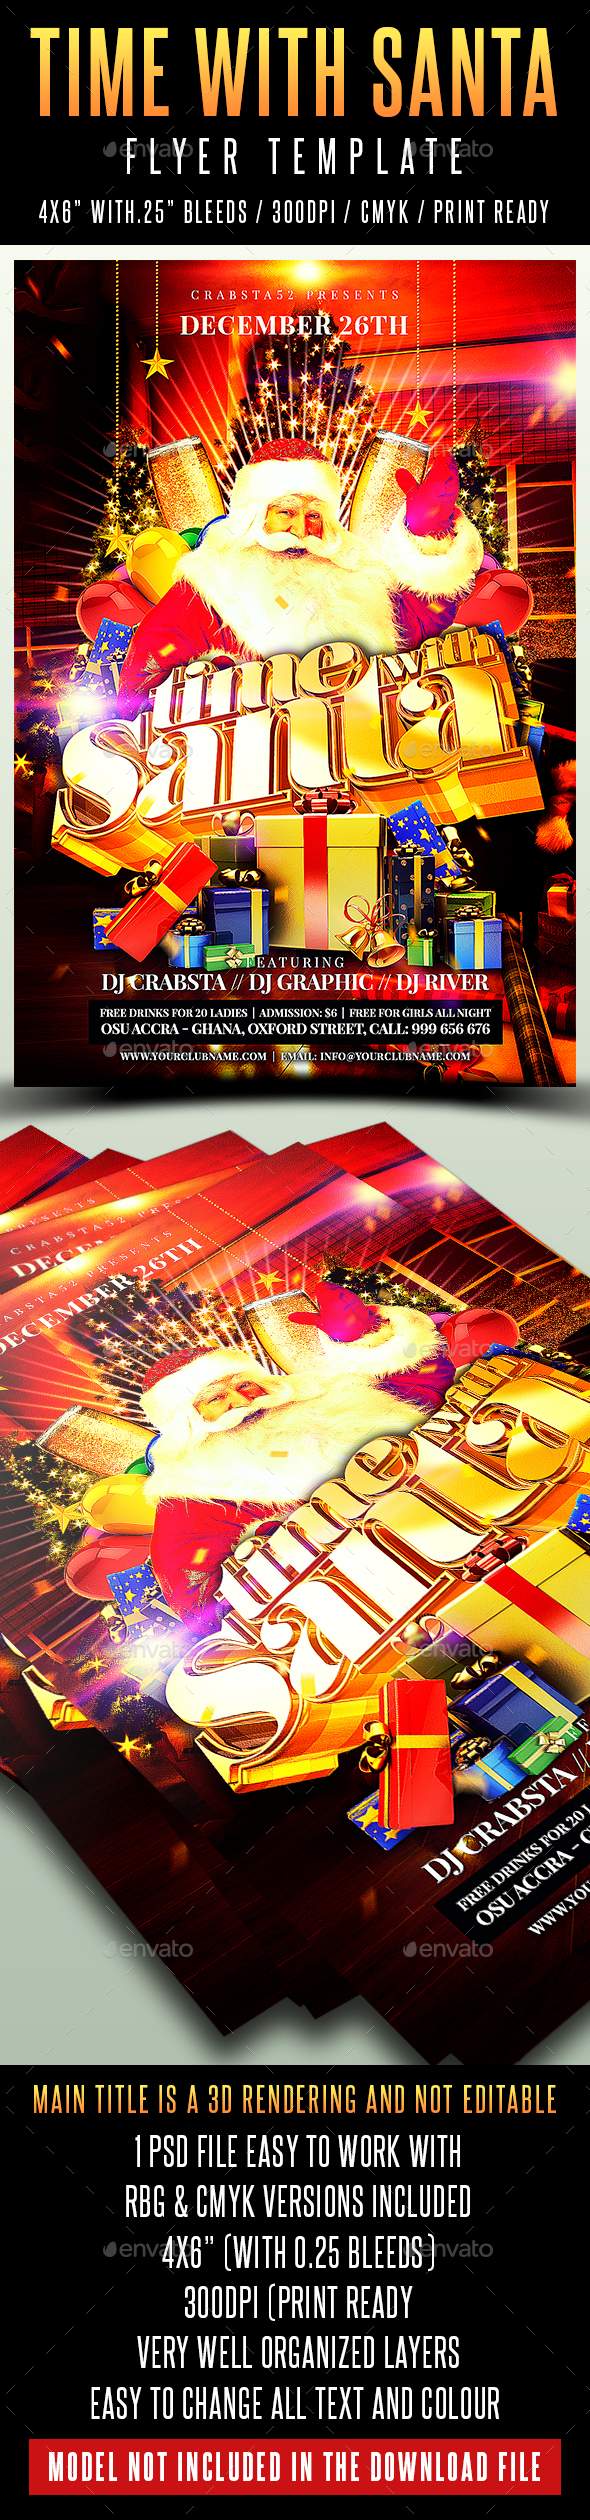 Time With Santa Flyer Template - Holidays Events